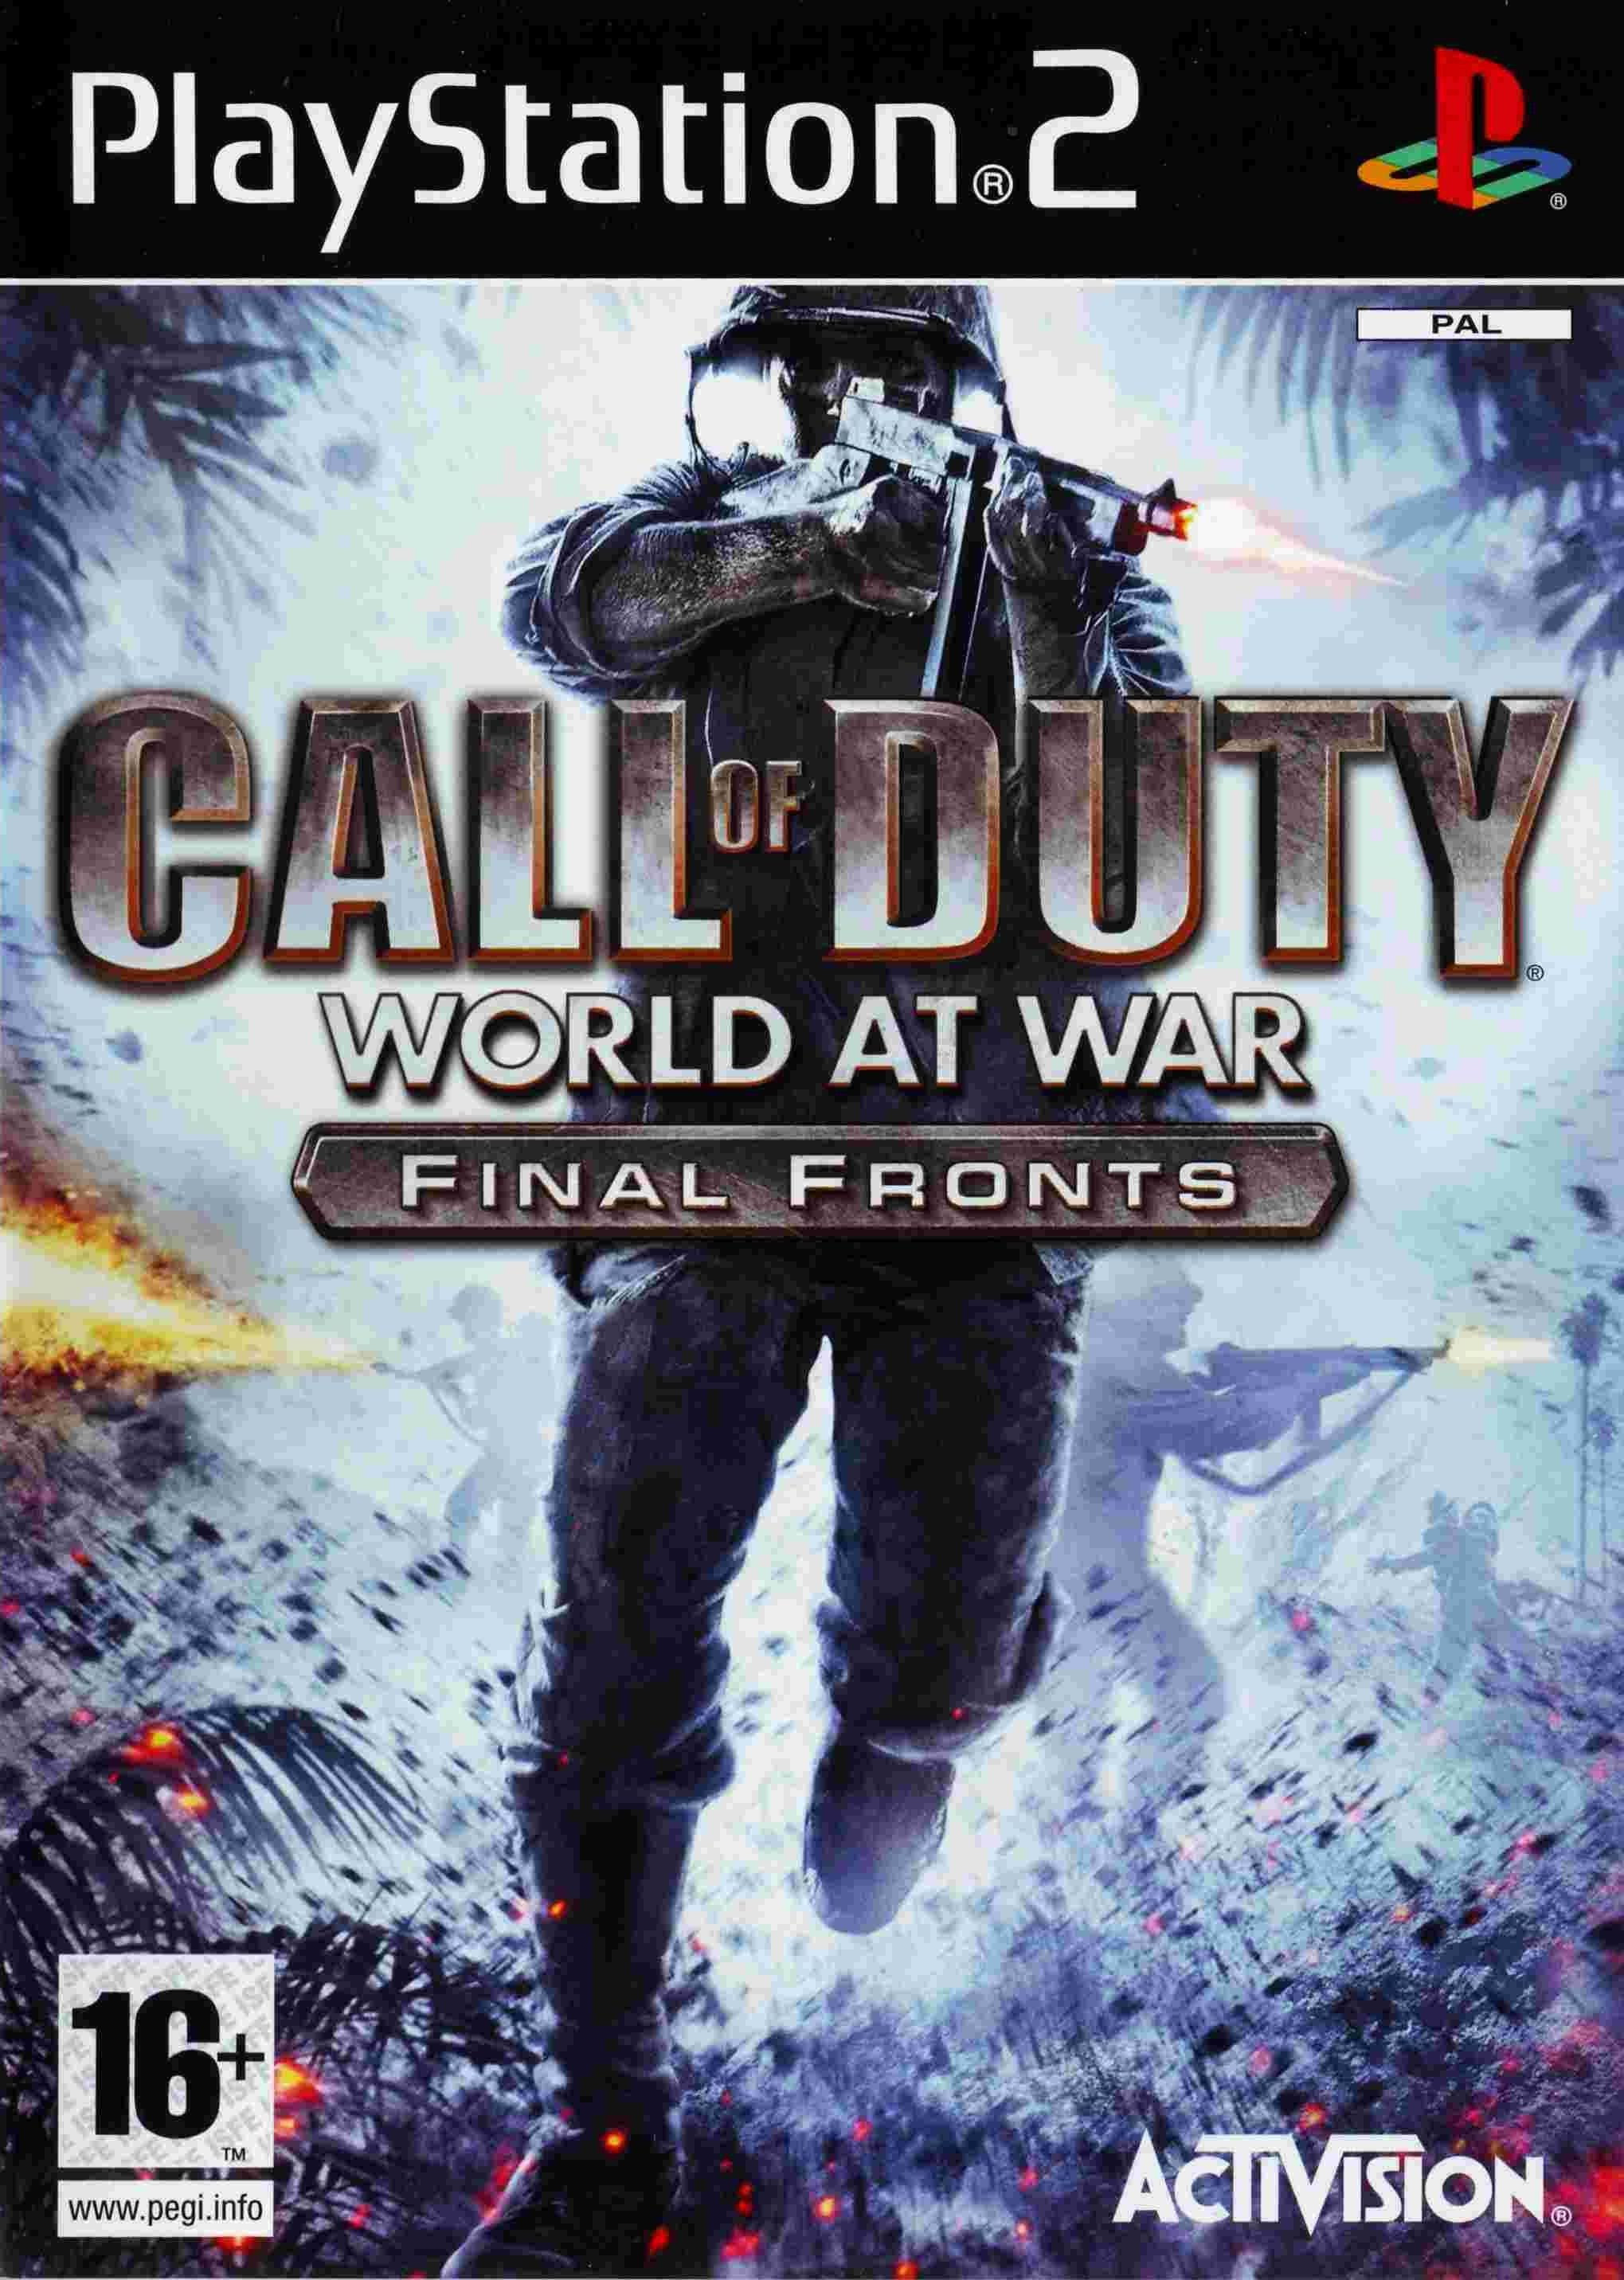 Call Of Duty World At War Final Fronts Jogos Pc Jogos De Playstation Jogos Ps2